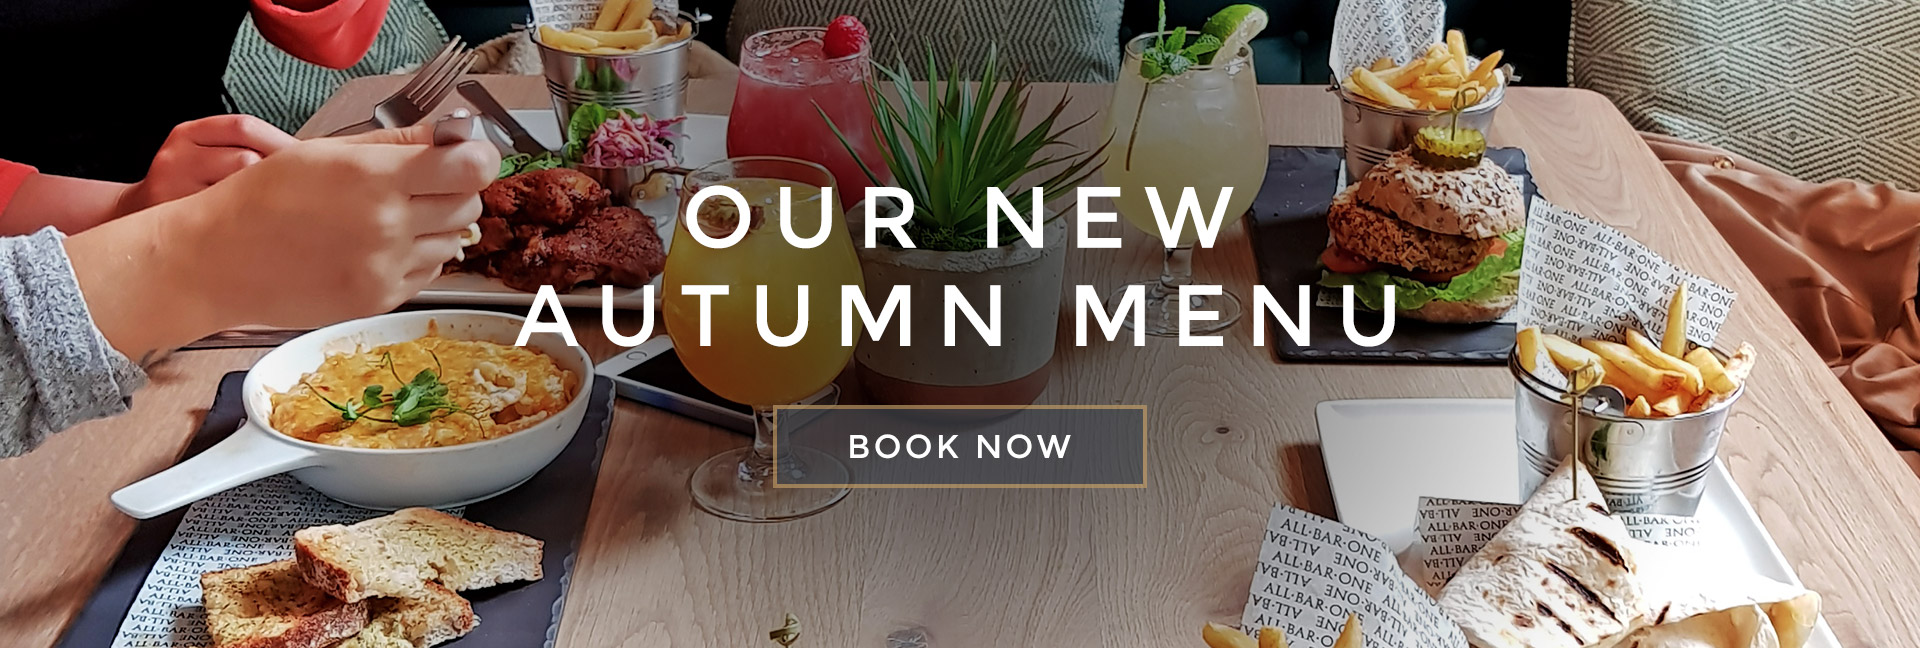 Our new Autumn menu at All Bar One Covent Garden - Book now